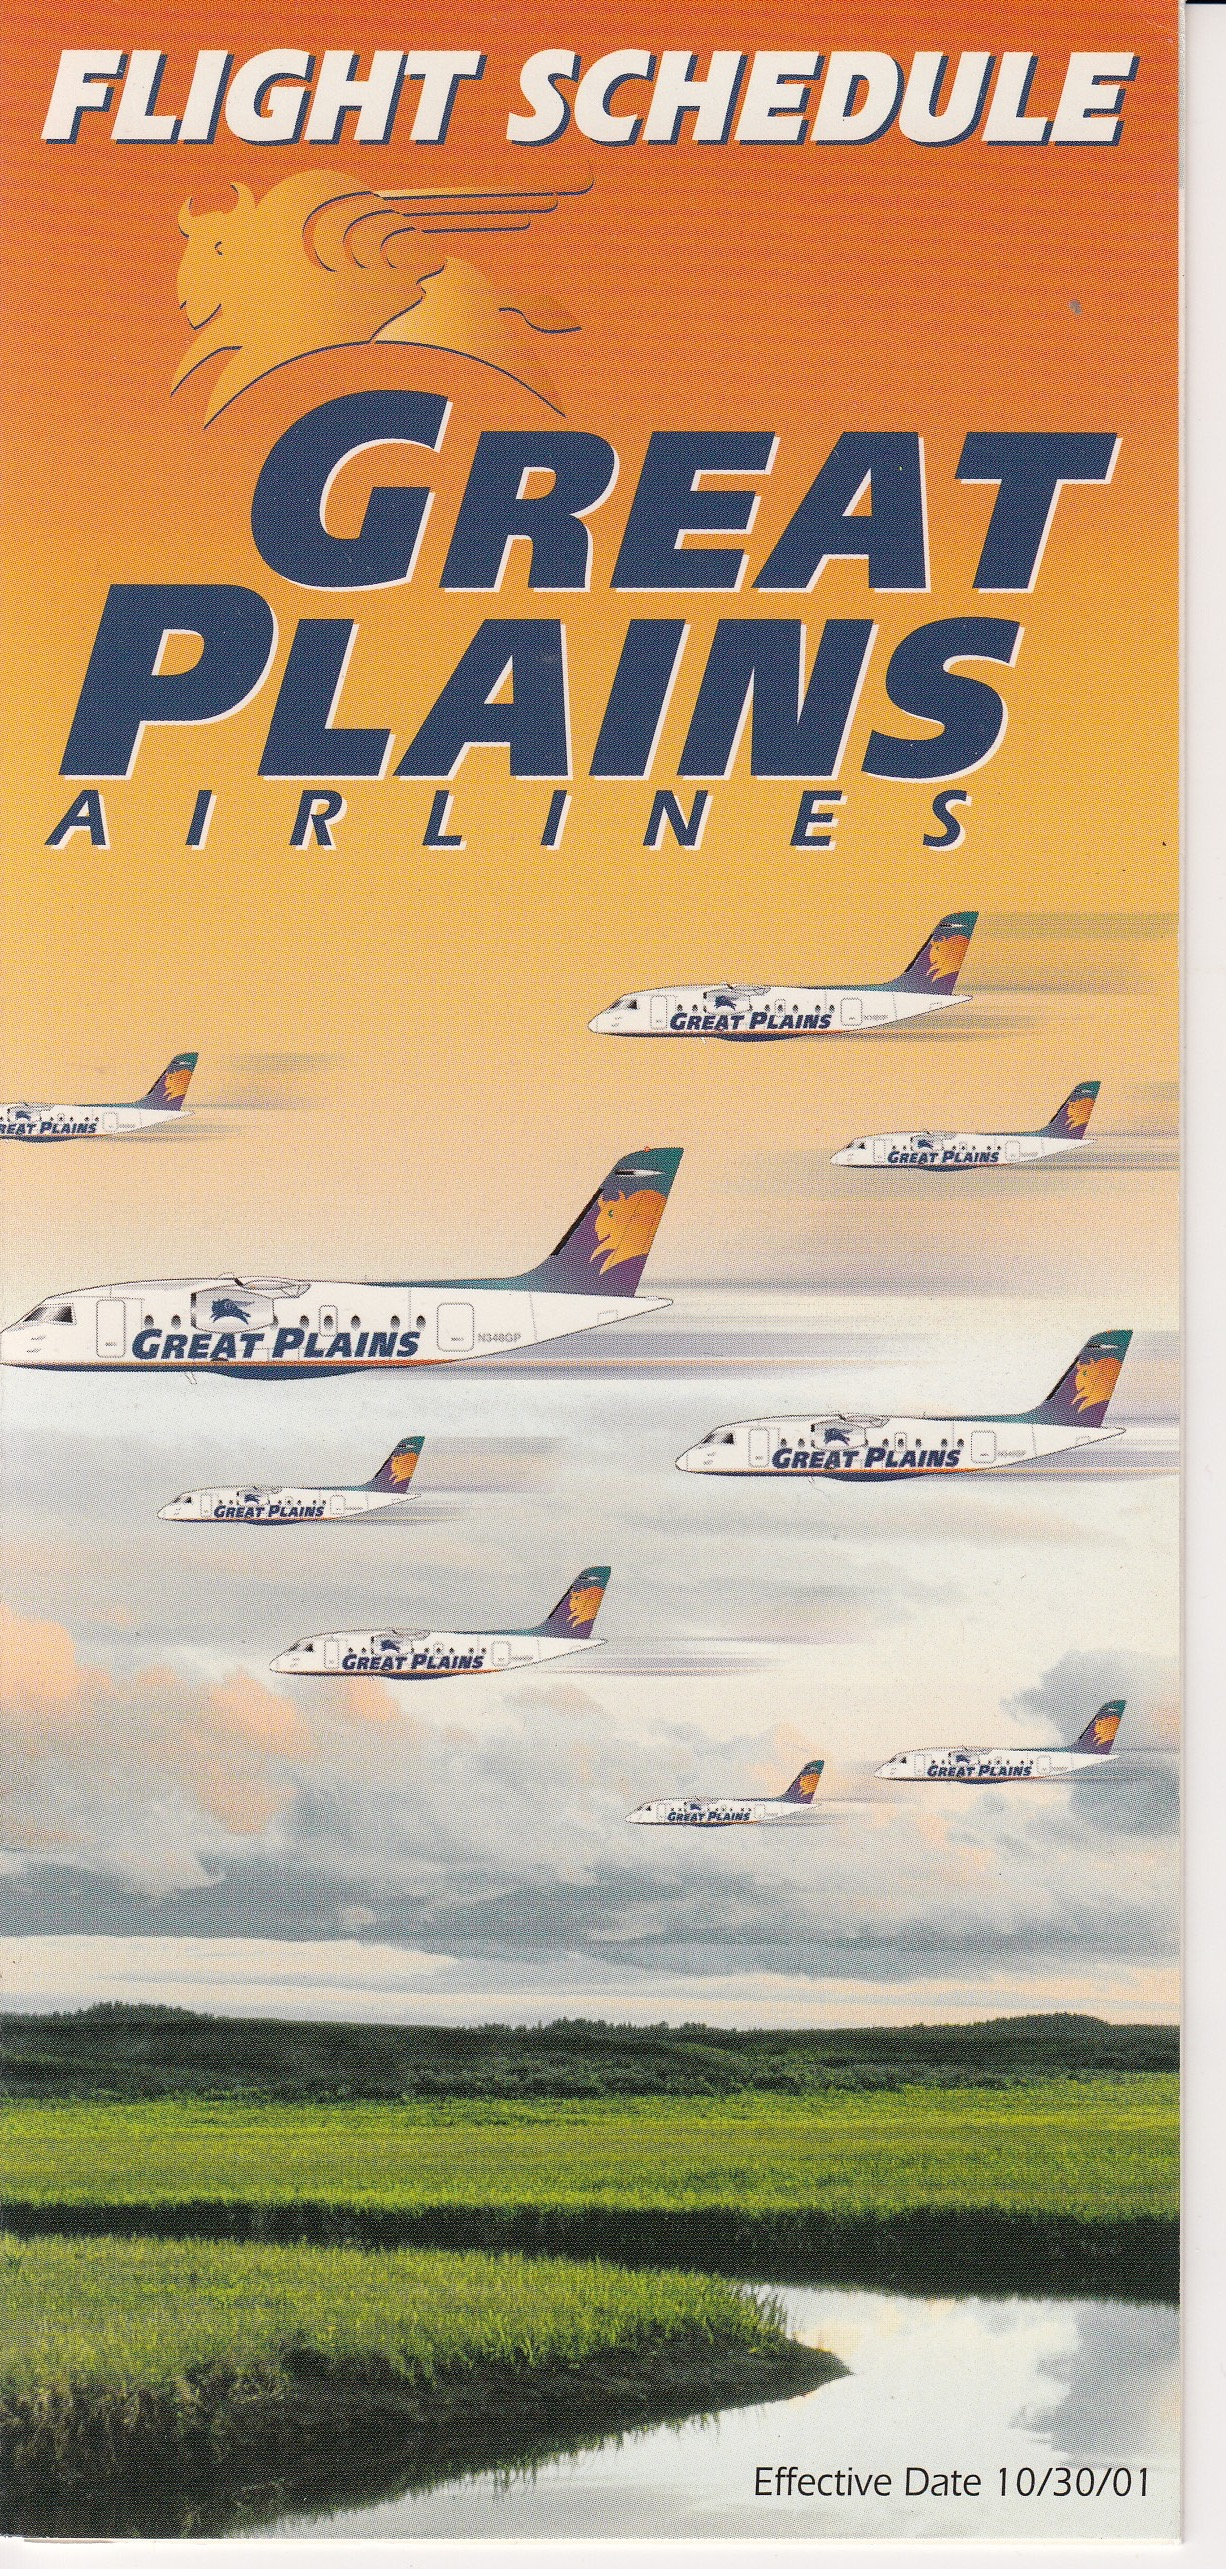 Great Plains Airlines Timetable -10/2001